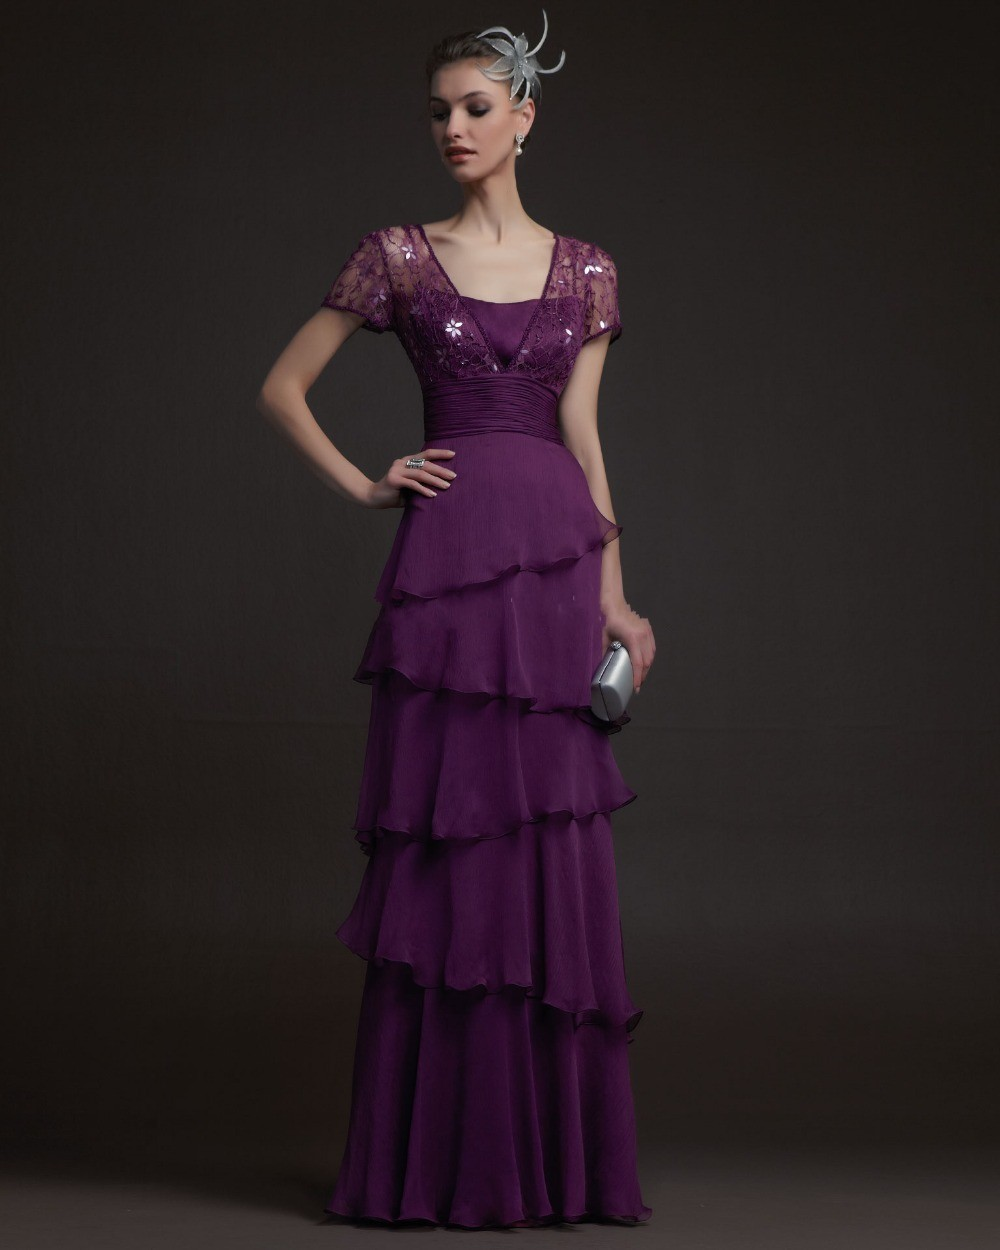 7b2e7873fcb23 Amazing Formal Beautiful beaded short sleeves lace special design ...